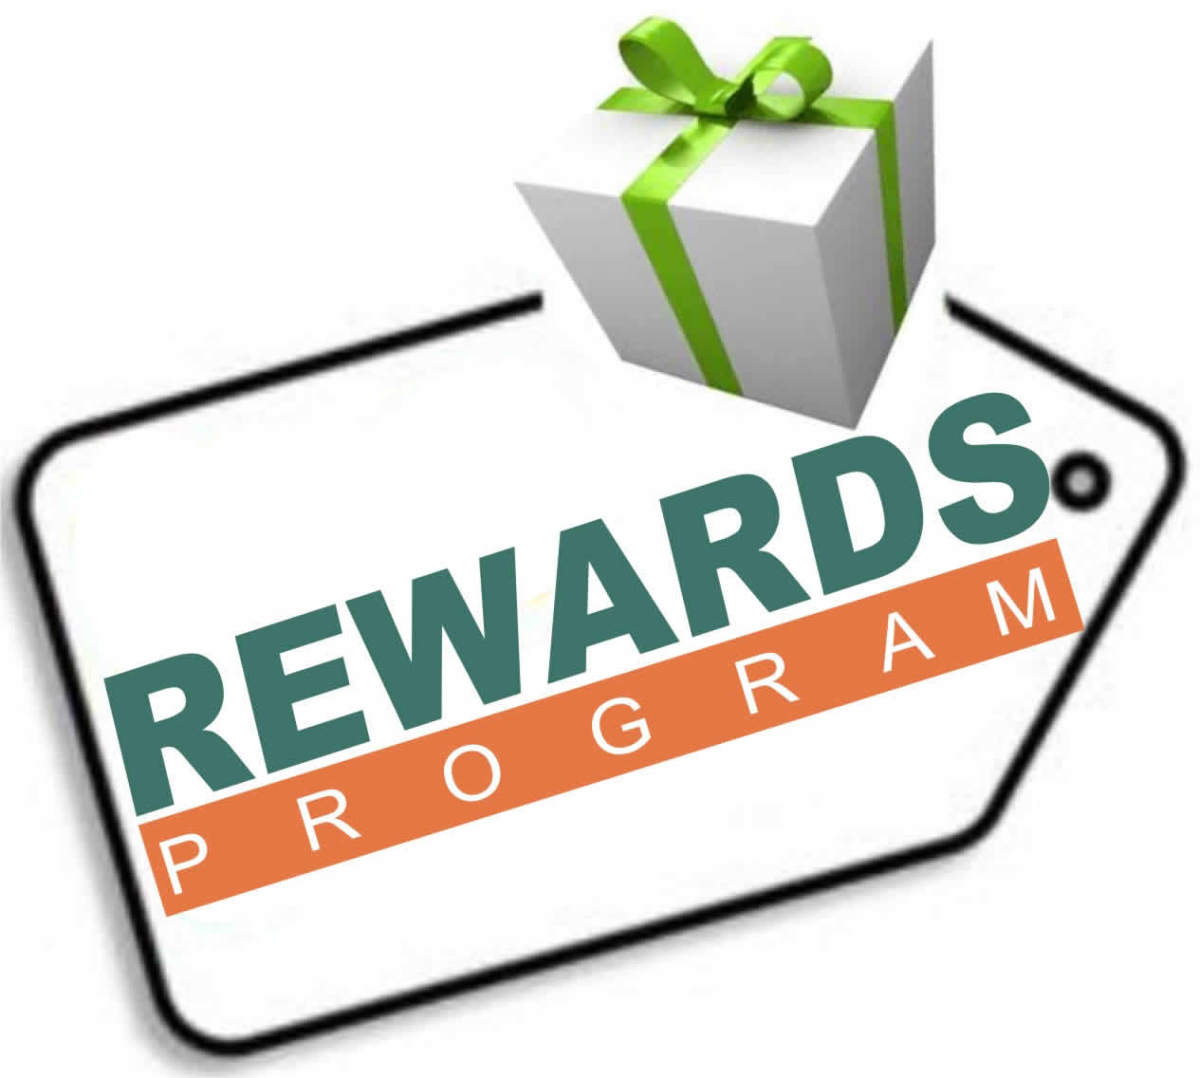 Has Reward For All he does